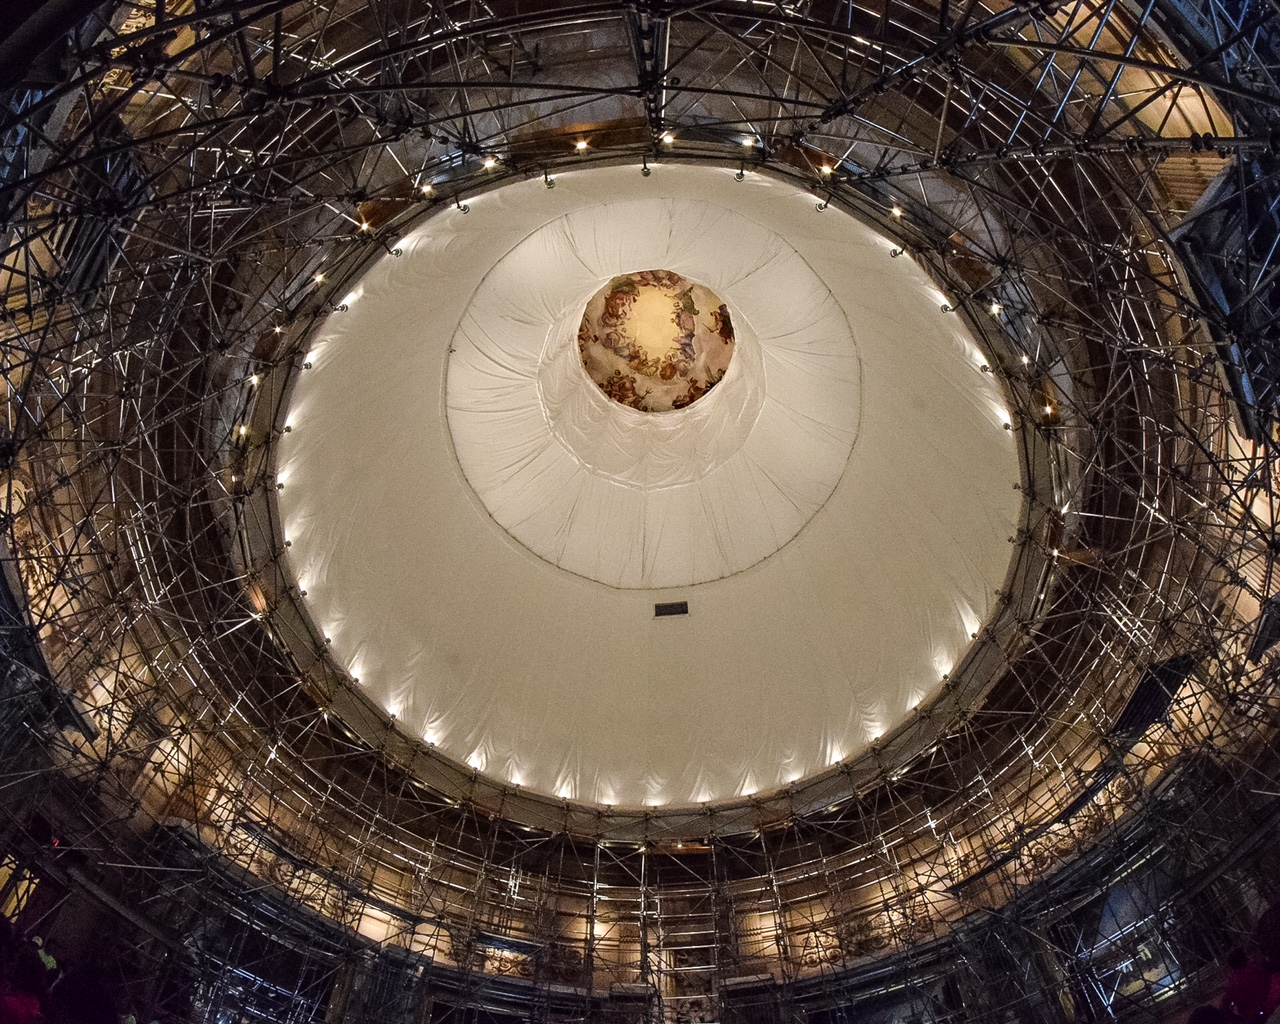 """In September 2016, the $60 million Capitol Dome restoration will wrap up and scaffolding will be removed, once again offering visitors full views of the stunning rotunda topped by """"The Apotheosis of Washington,"""" a fresco by Italian-born artist Constantino Brumidi.  To give an idea of the height of the rotunda, the fresco (still visible through the protective sheeting) actually encompasses more than 4,600 square feet."""